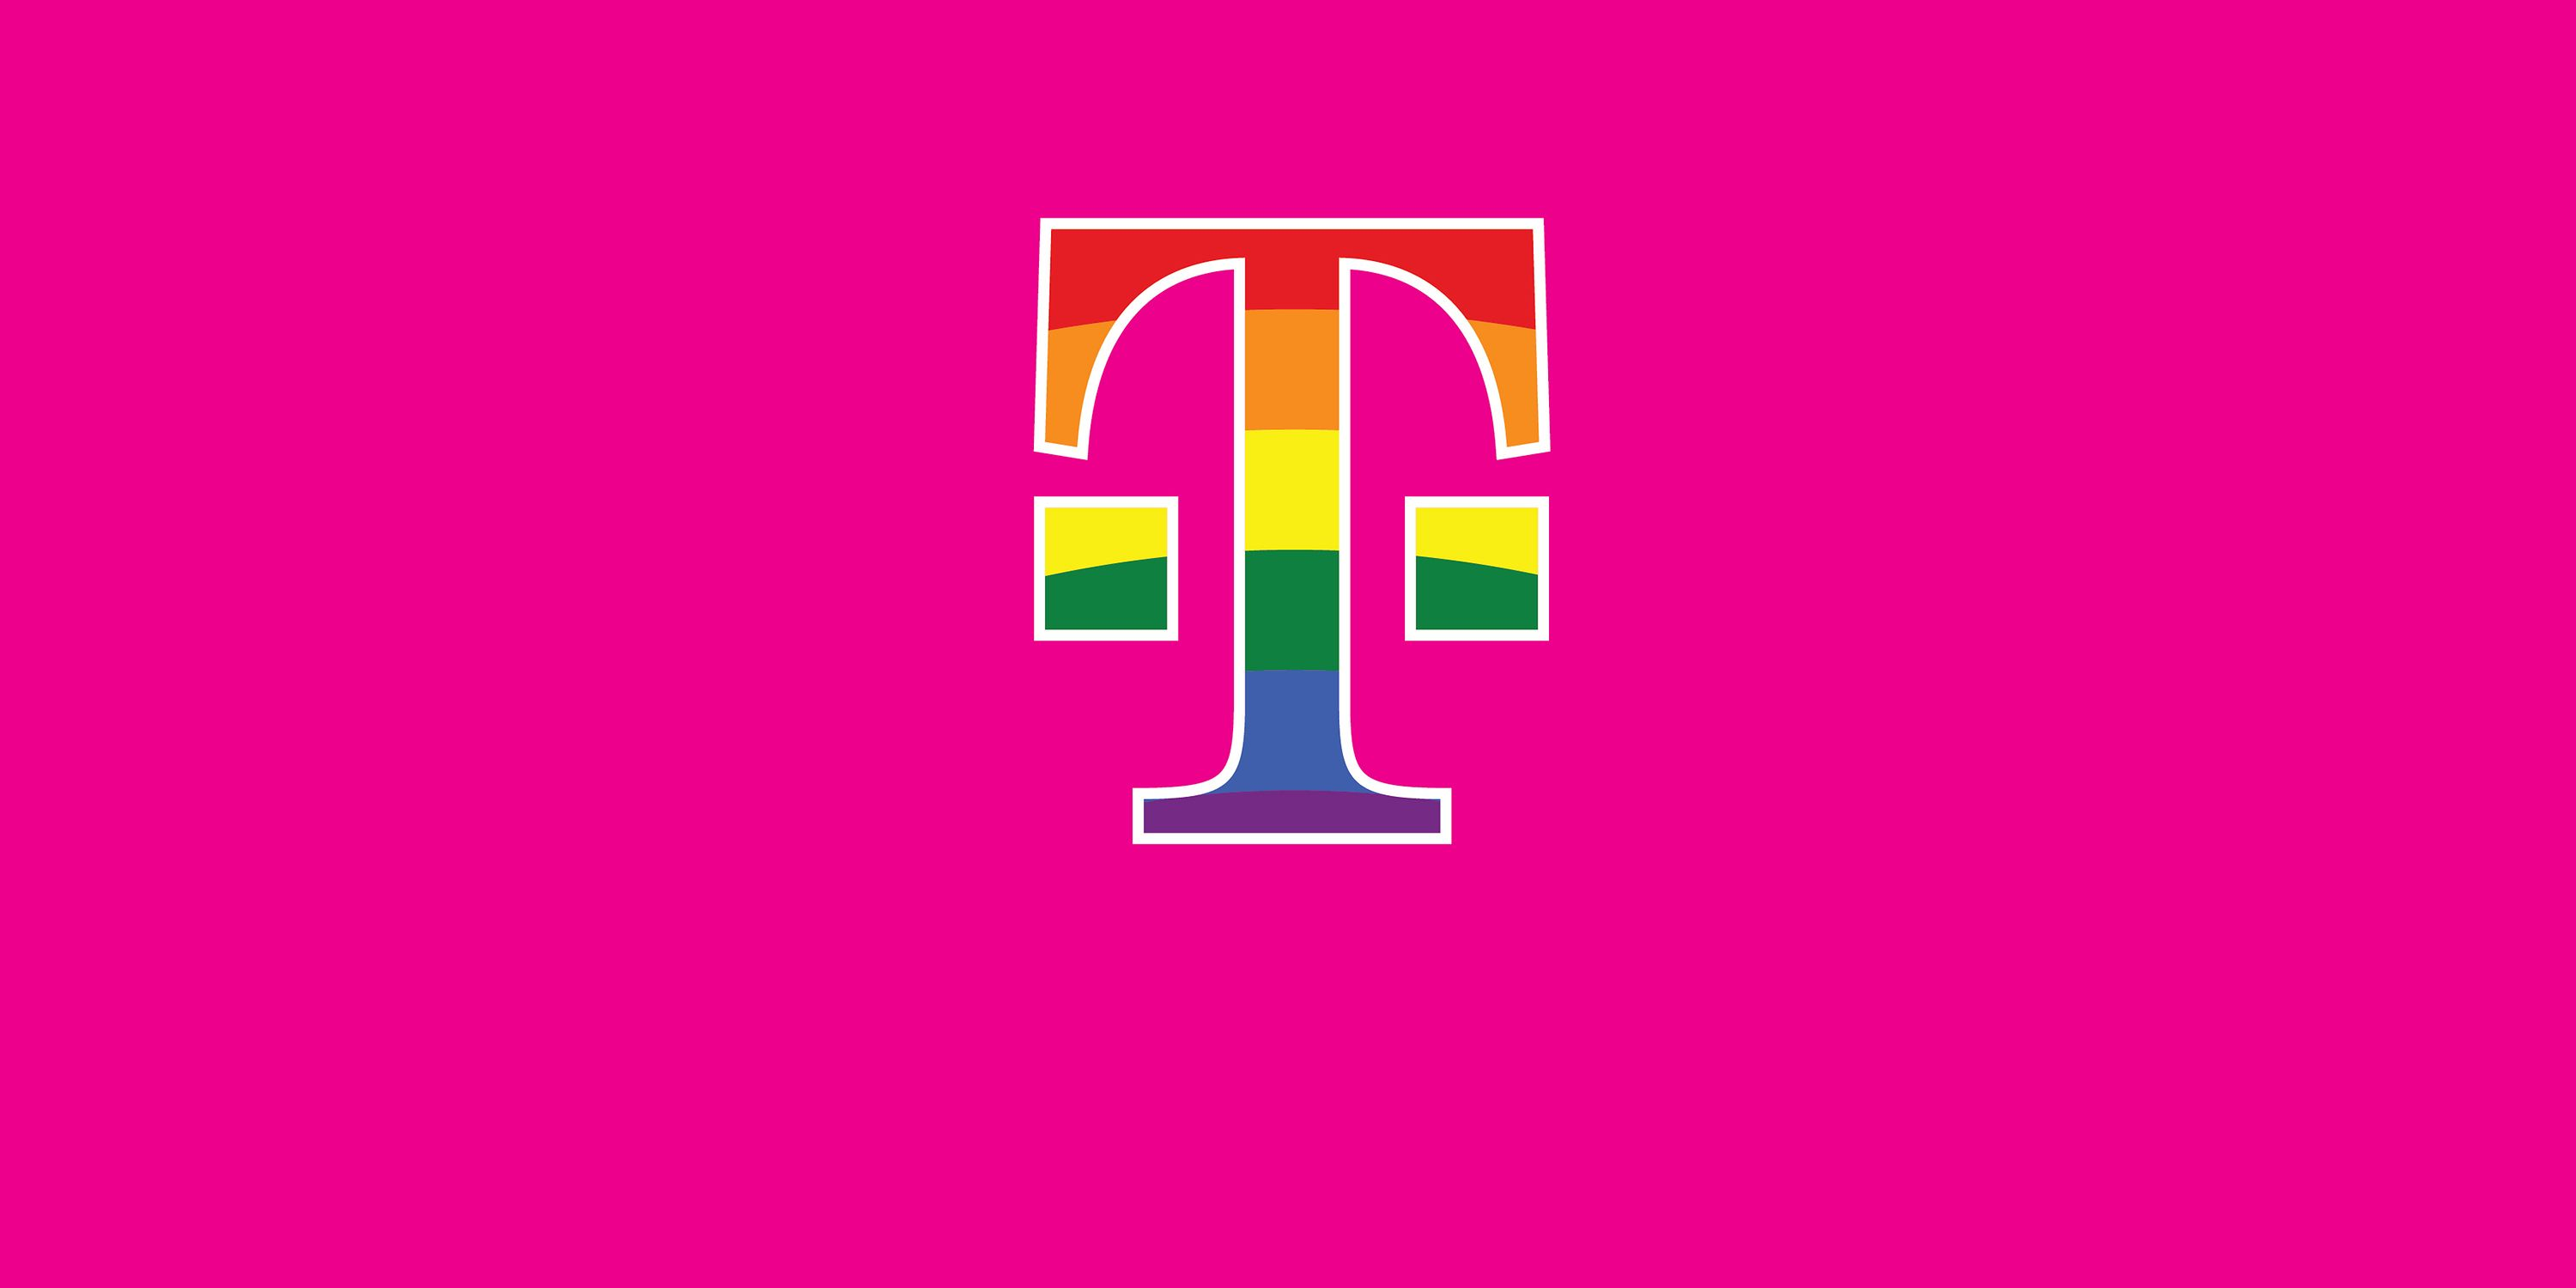 Clear Statement for Diversity: Deutsche Telekom joins this year's Christopher Street Day parade.